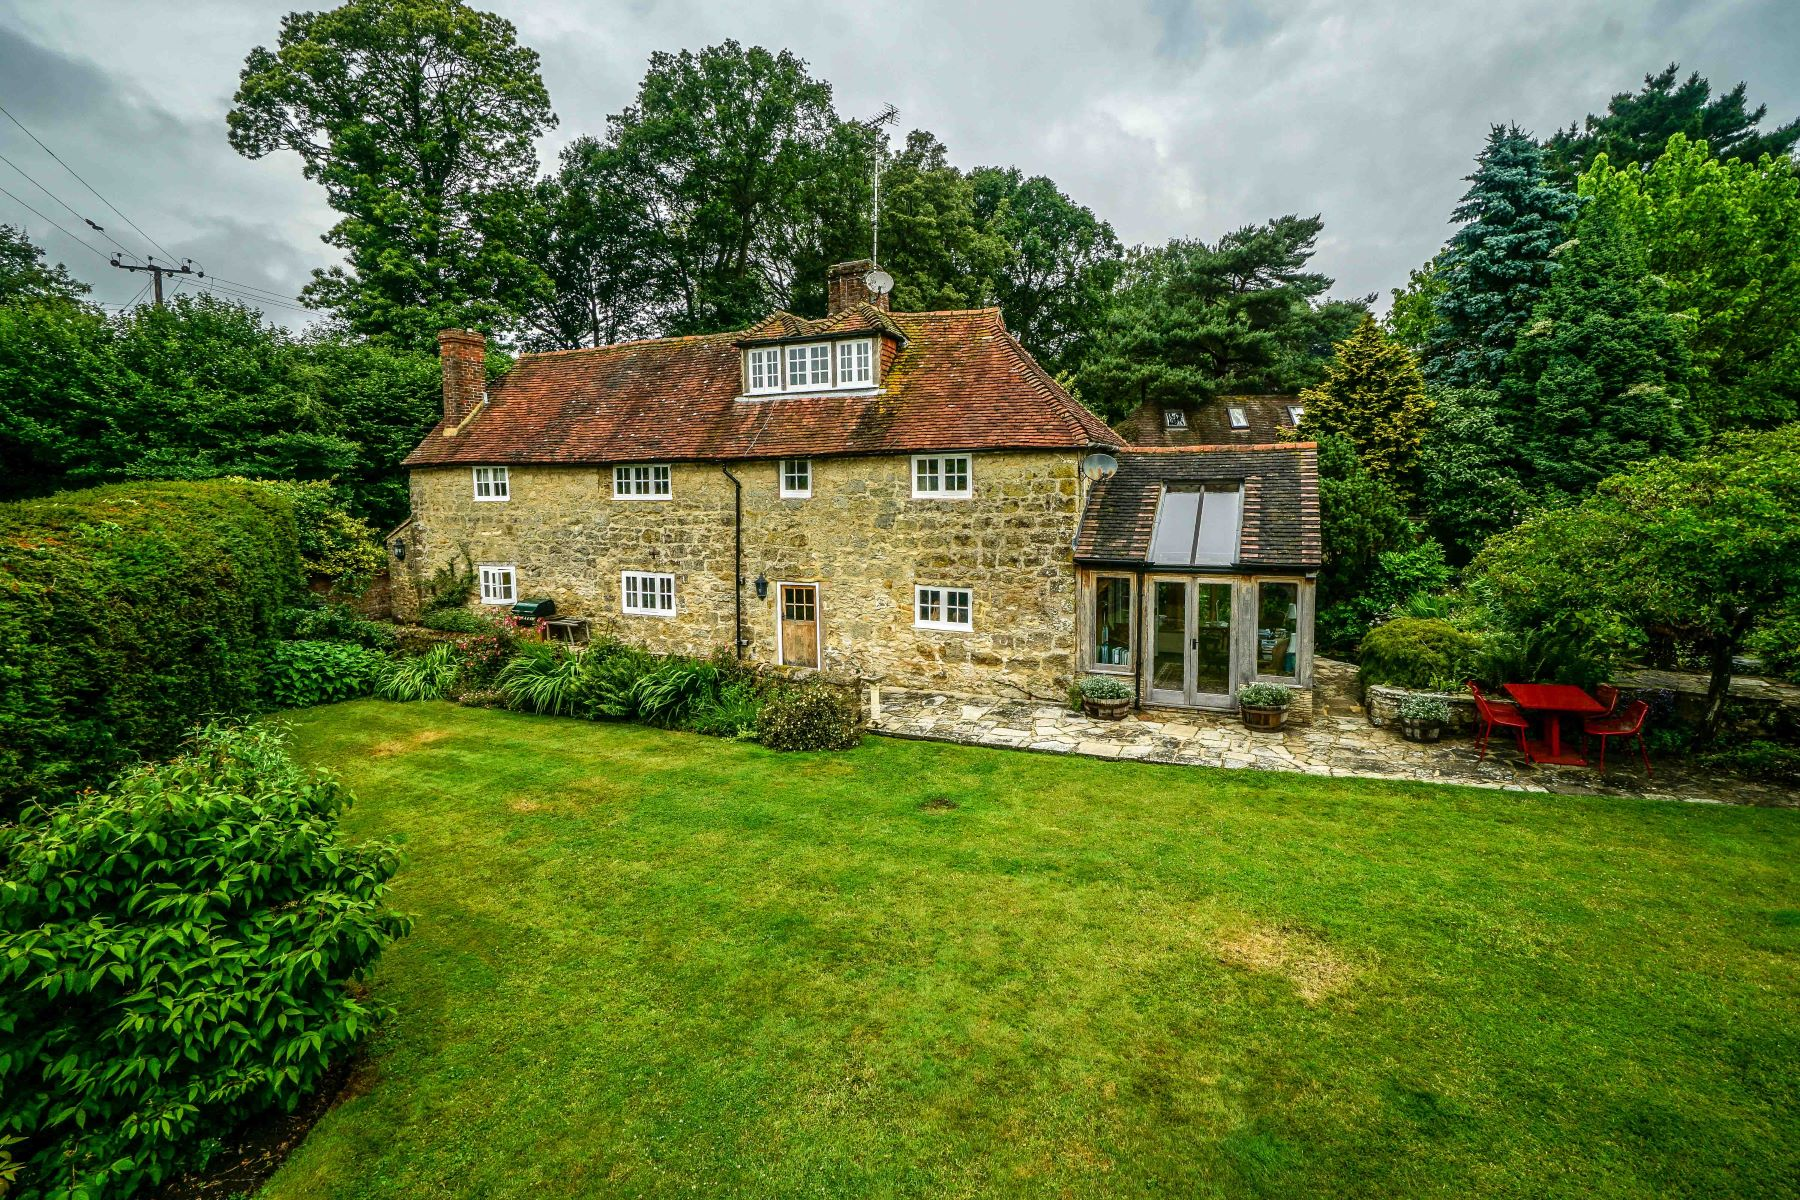 Single Family Homes for Sale at Lower Jordans Gay Street Pulborough, England RH20 2HH United Kingdom